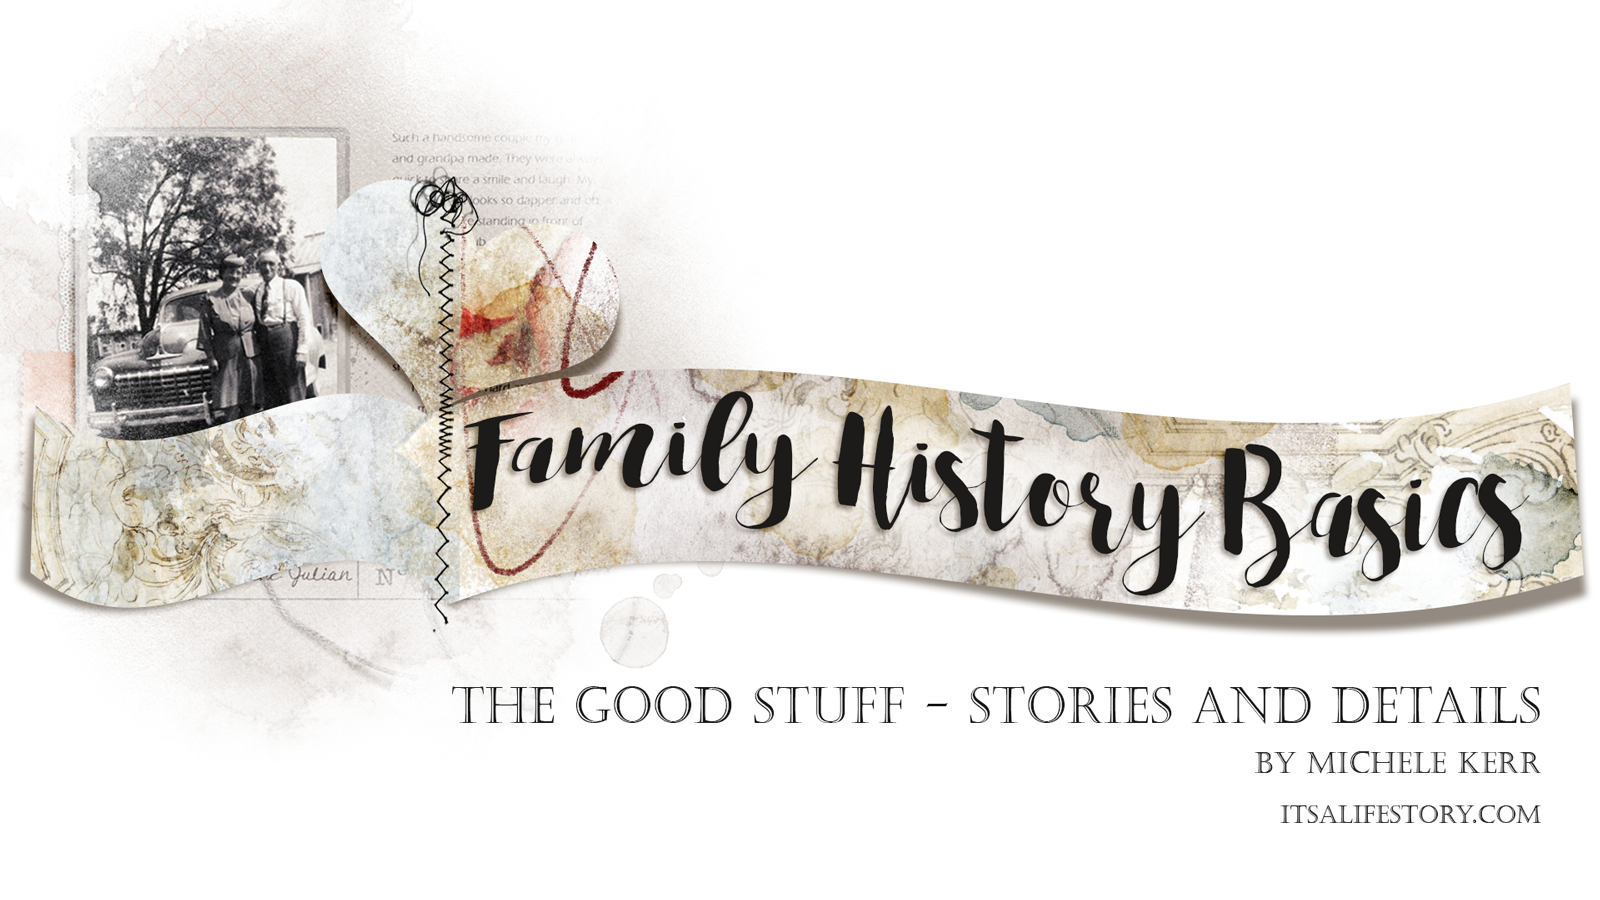 ItsALifeStory.com - FAMILY HISTORY BASICS _ The Good Stuff - Stories and Details